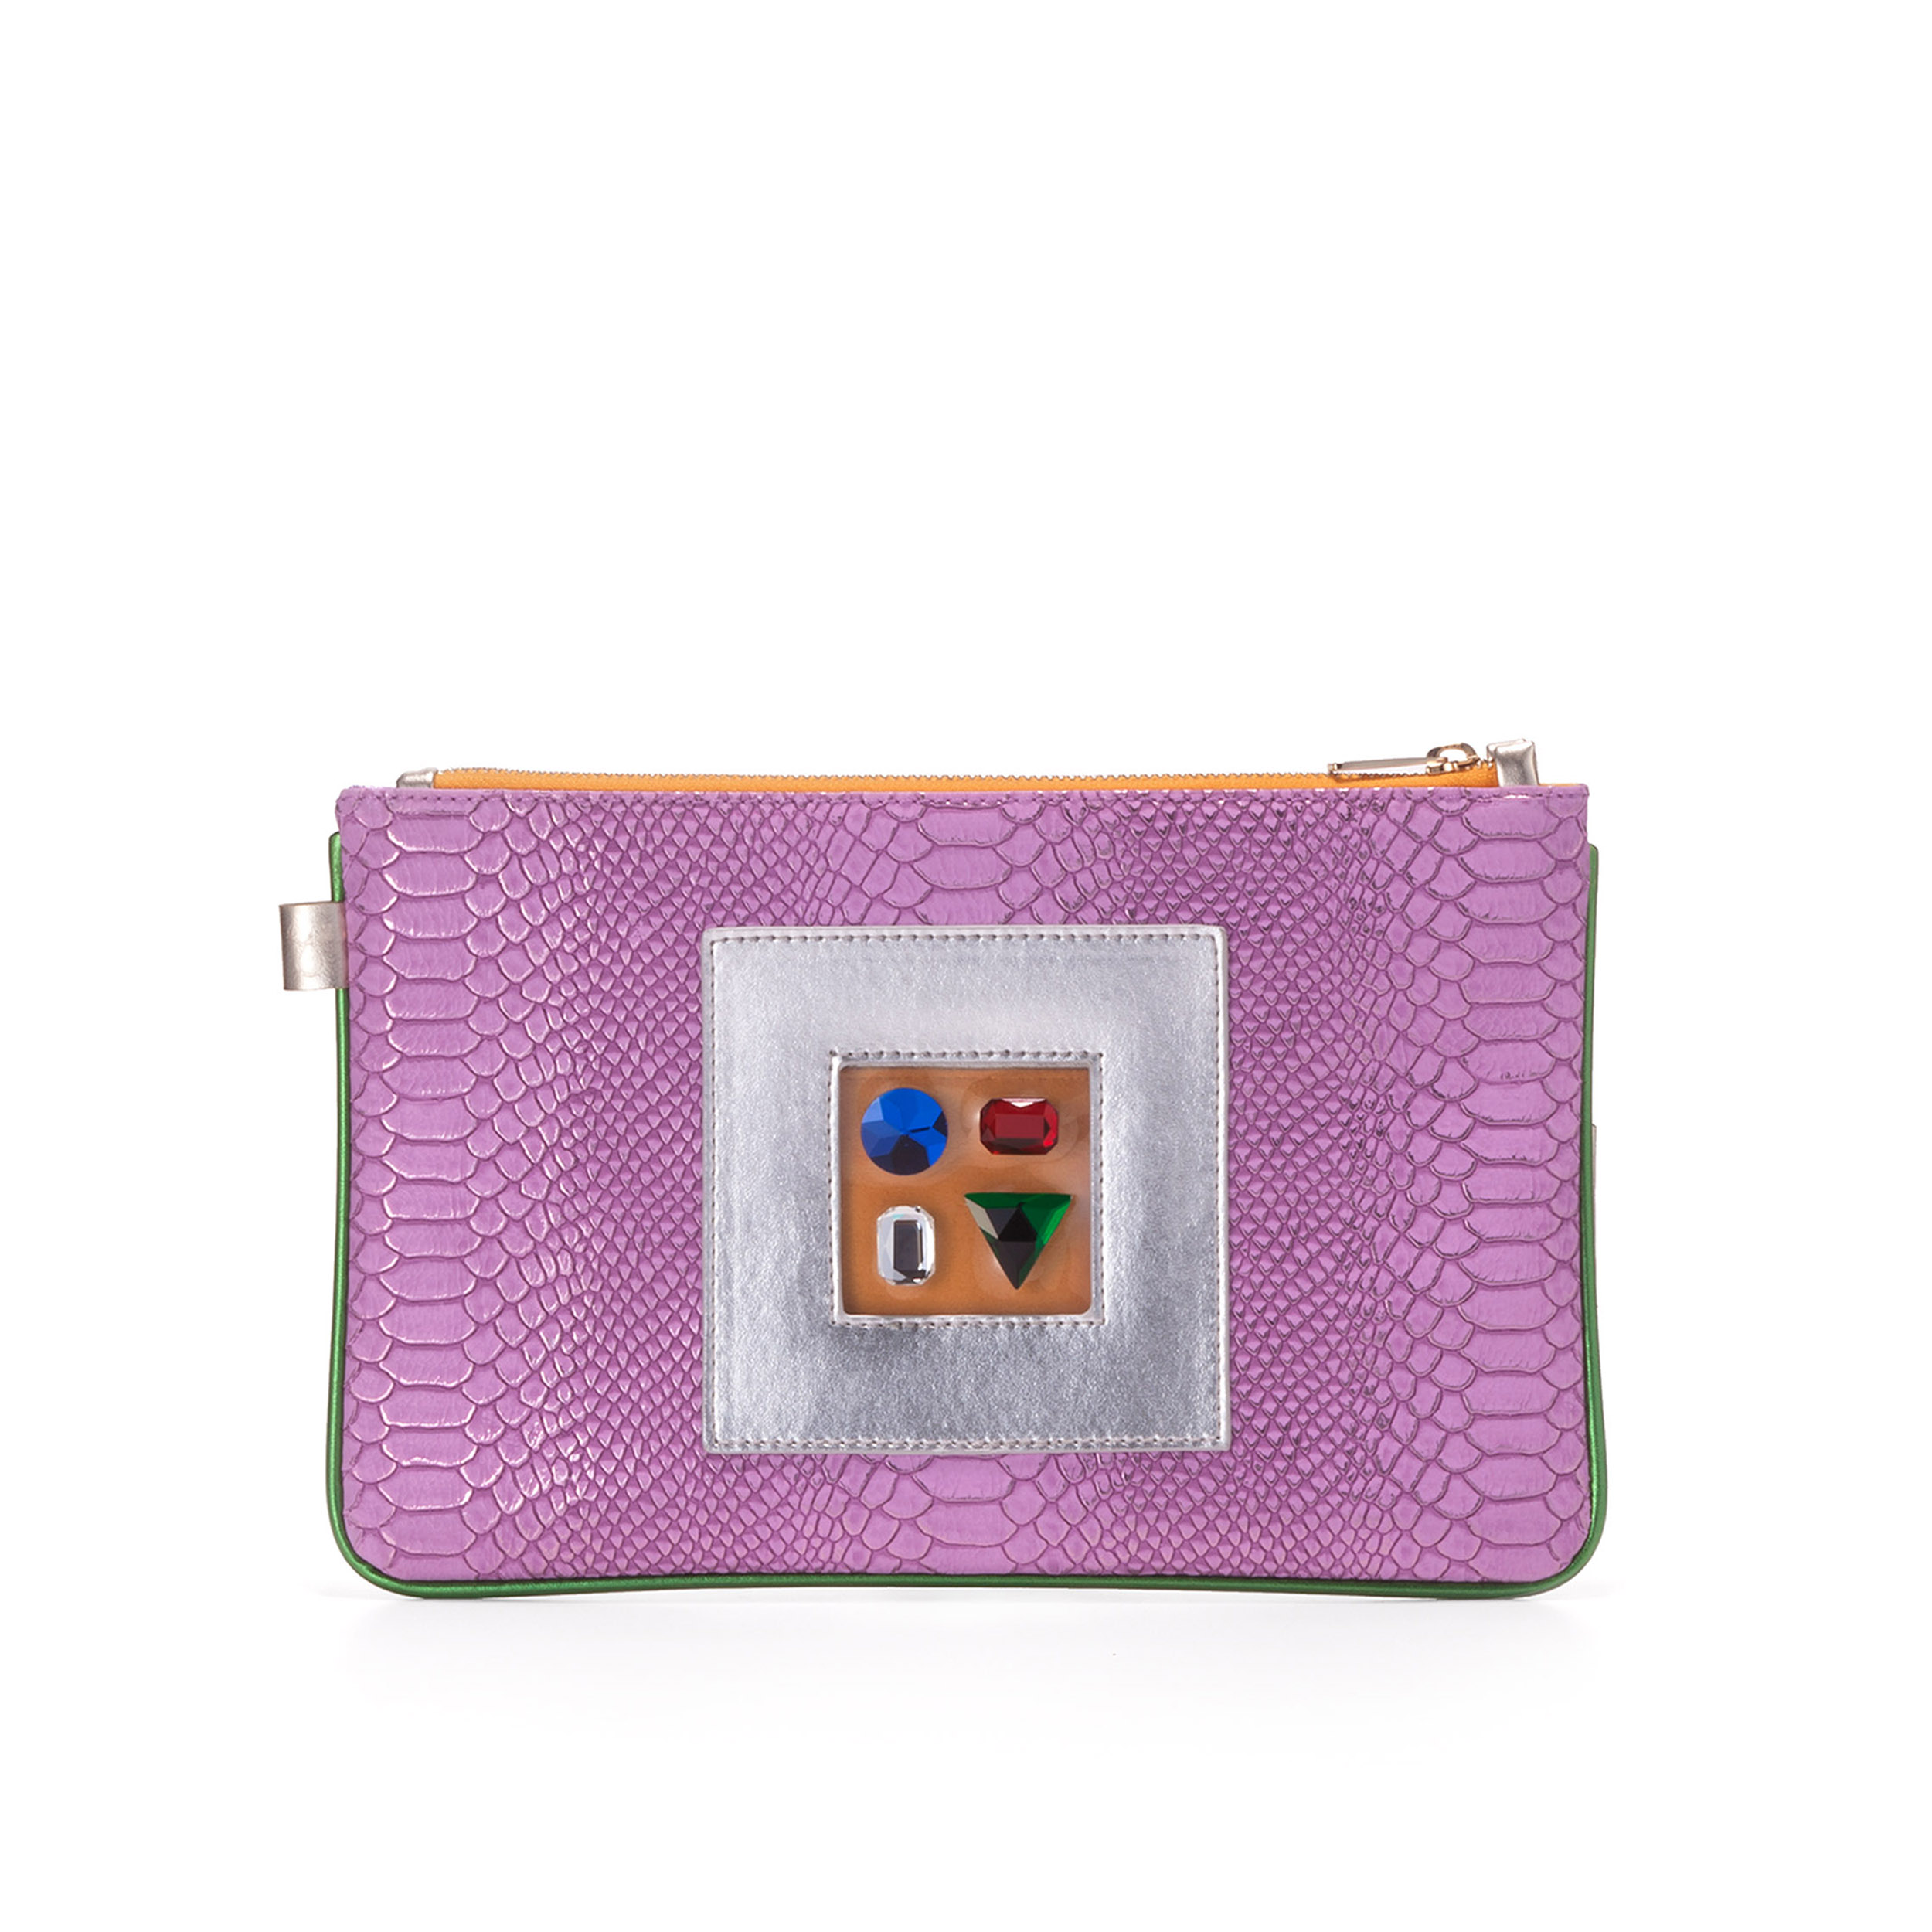 GEMINI-vegan-bracelet-clutch-mini-tablet-size6.jpg